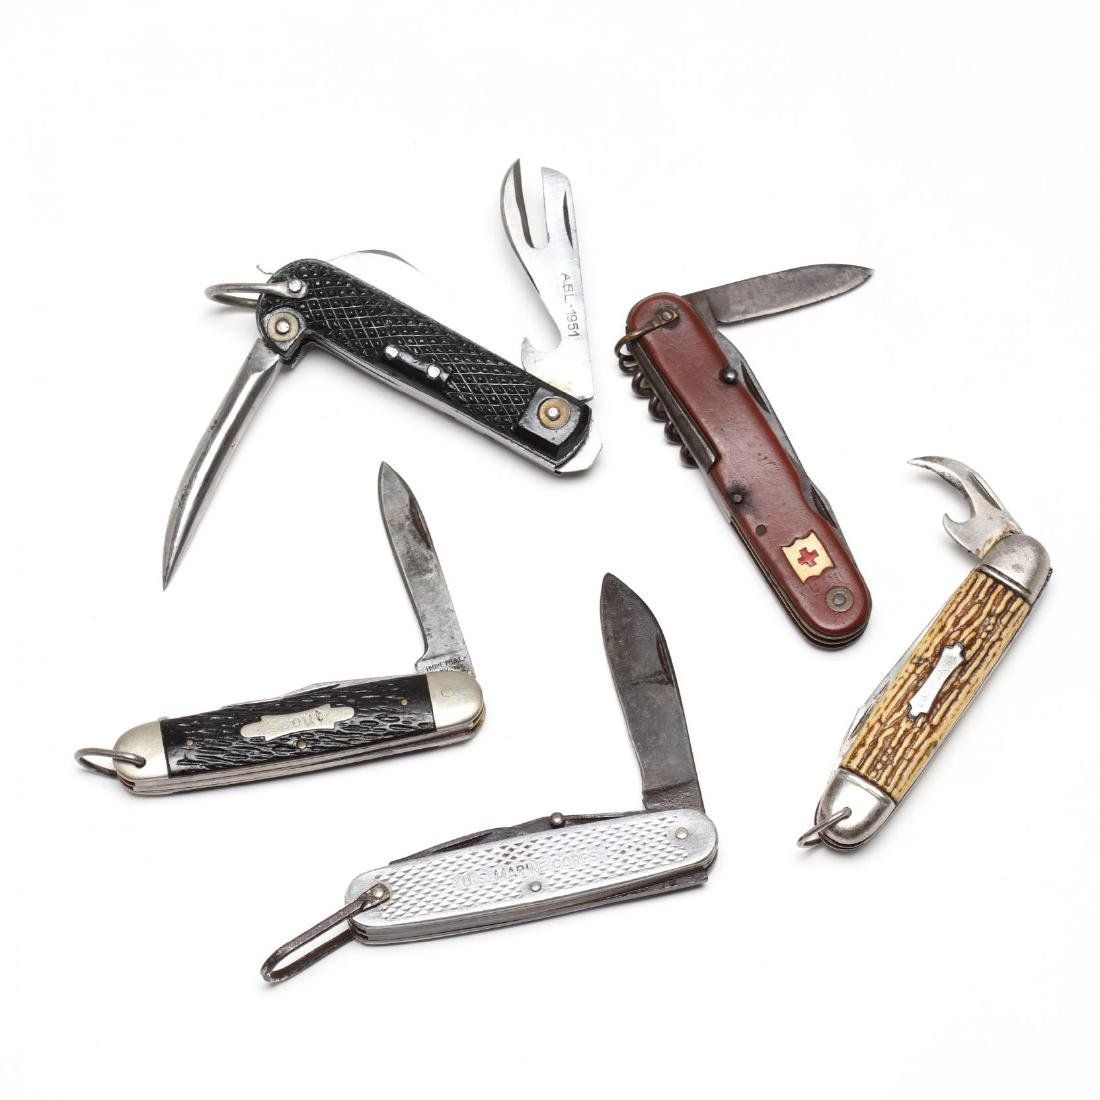 Five Vintage Pocket Knives